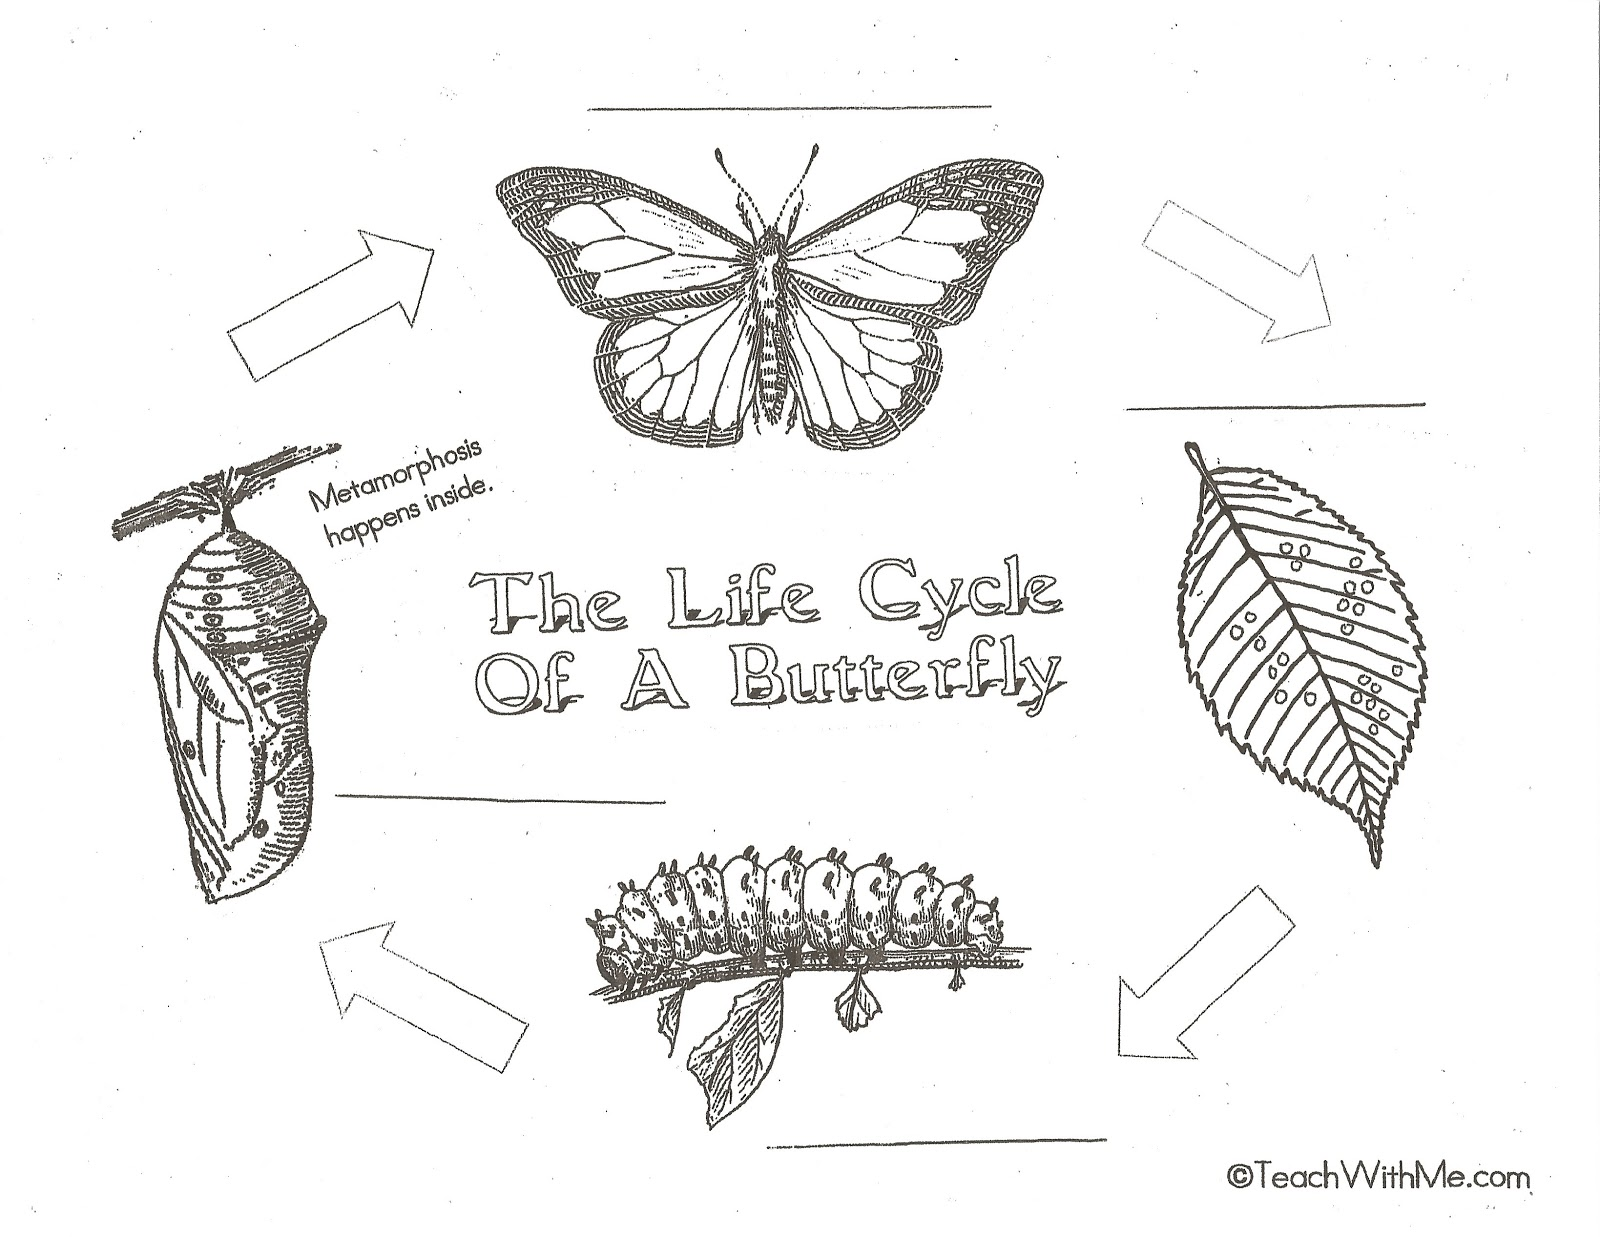 Coloring pages of butterfly stages of life - Butterfly Metamorphosis Coloring Pages Life Cycle Of Butterfly Worksheet 1600x1237 Free Butterfly Coloring Pages Life